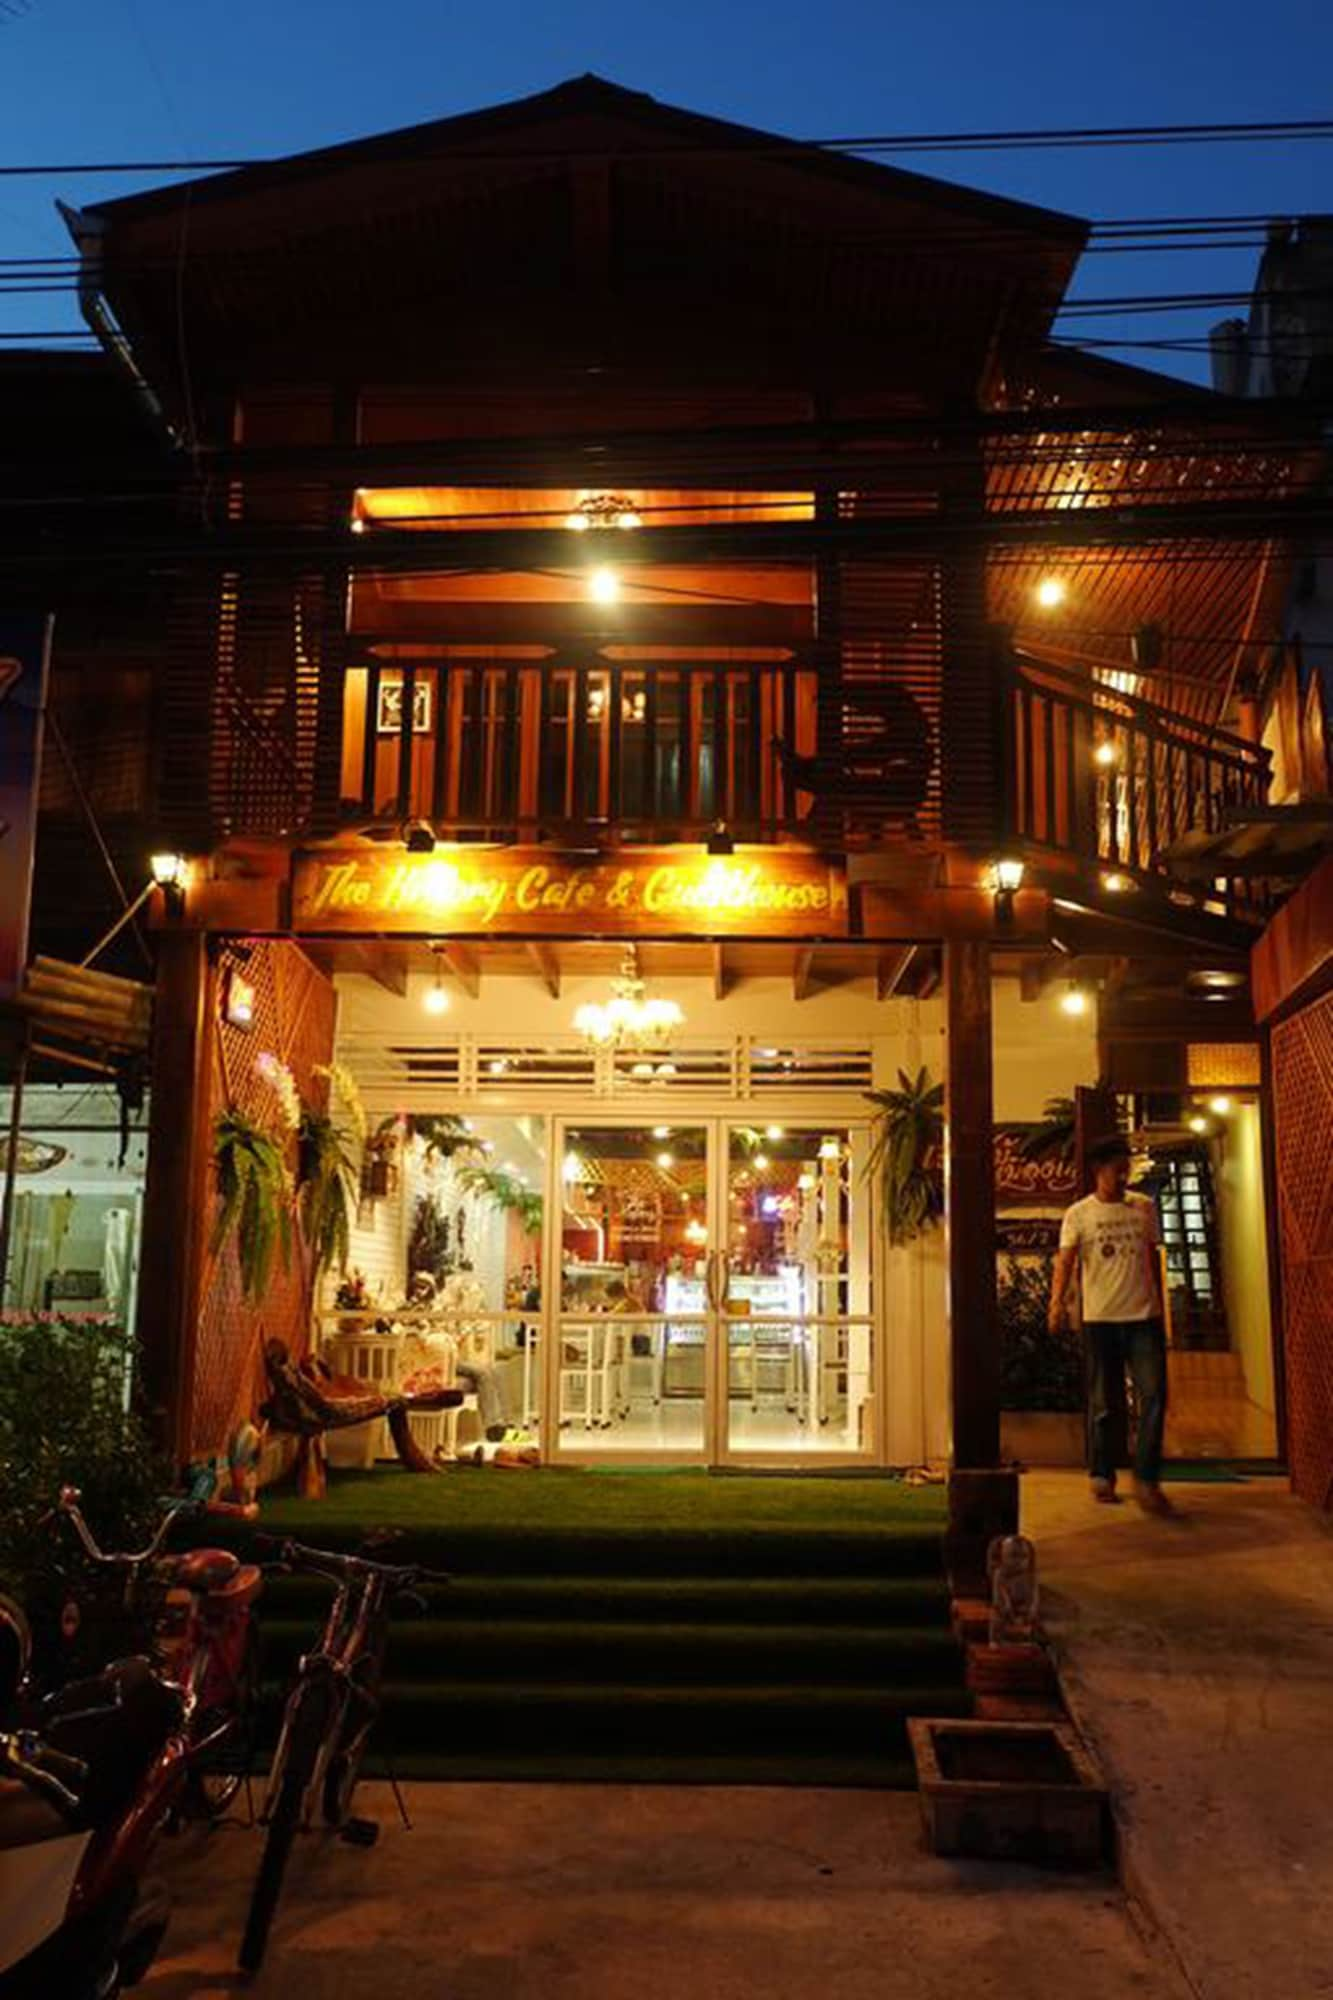 The History Cafe' & Guesthouse, Muang Sukhothai